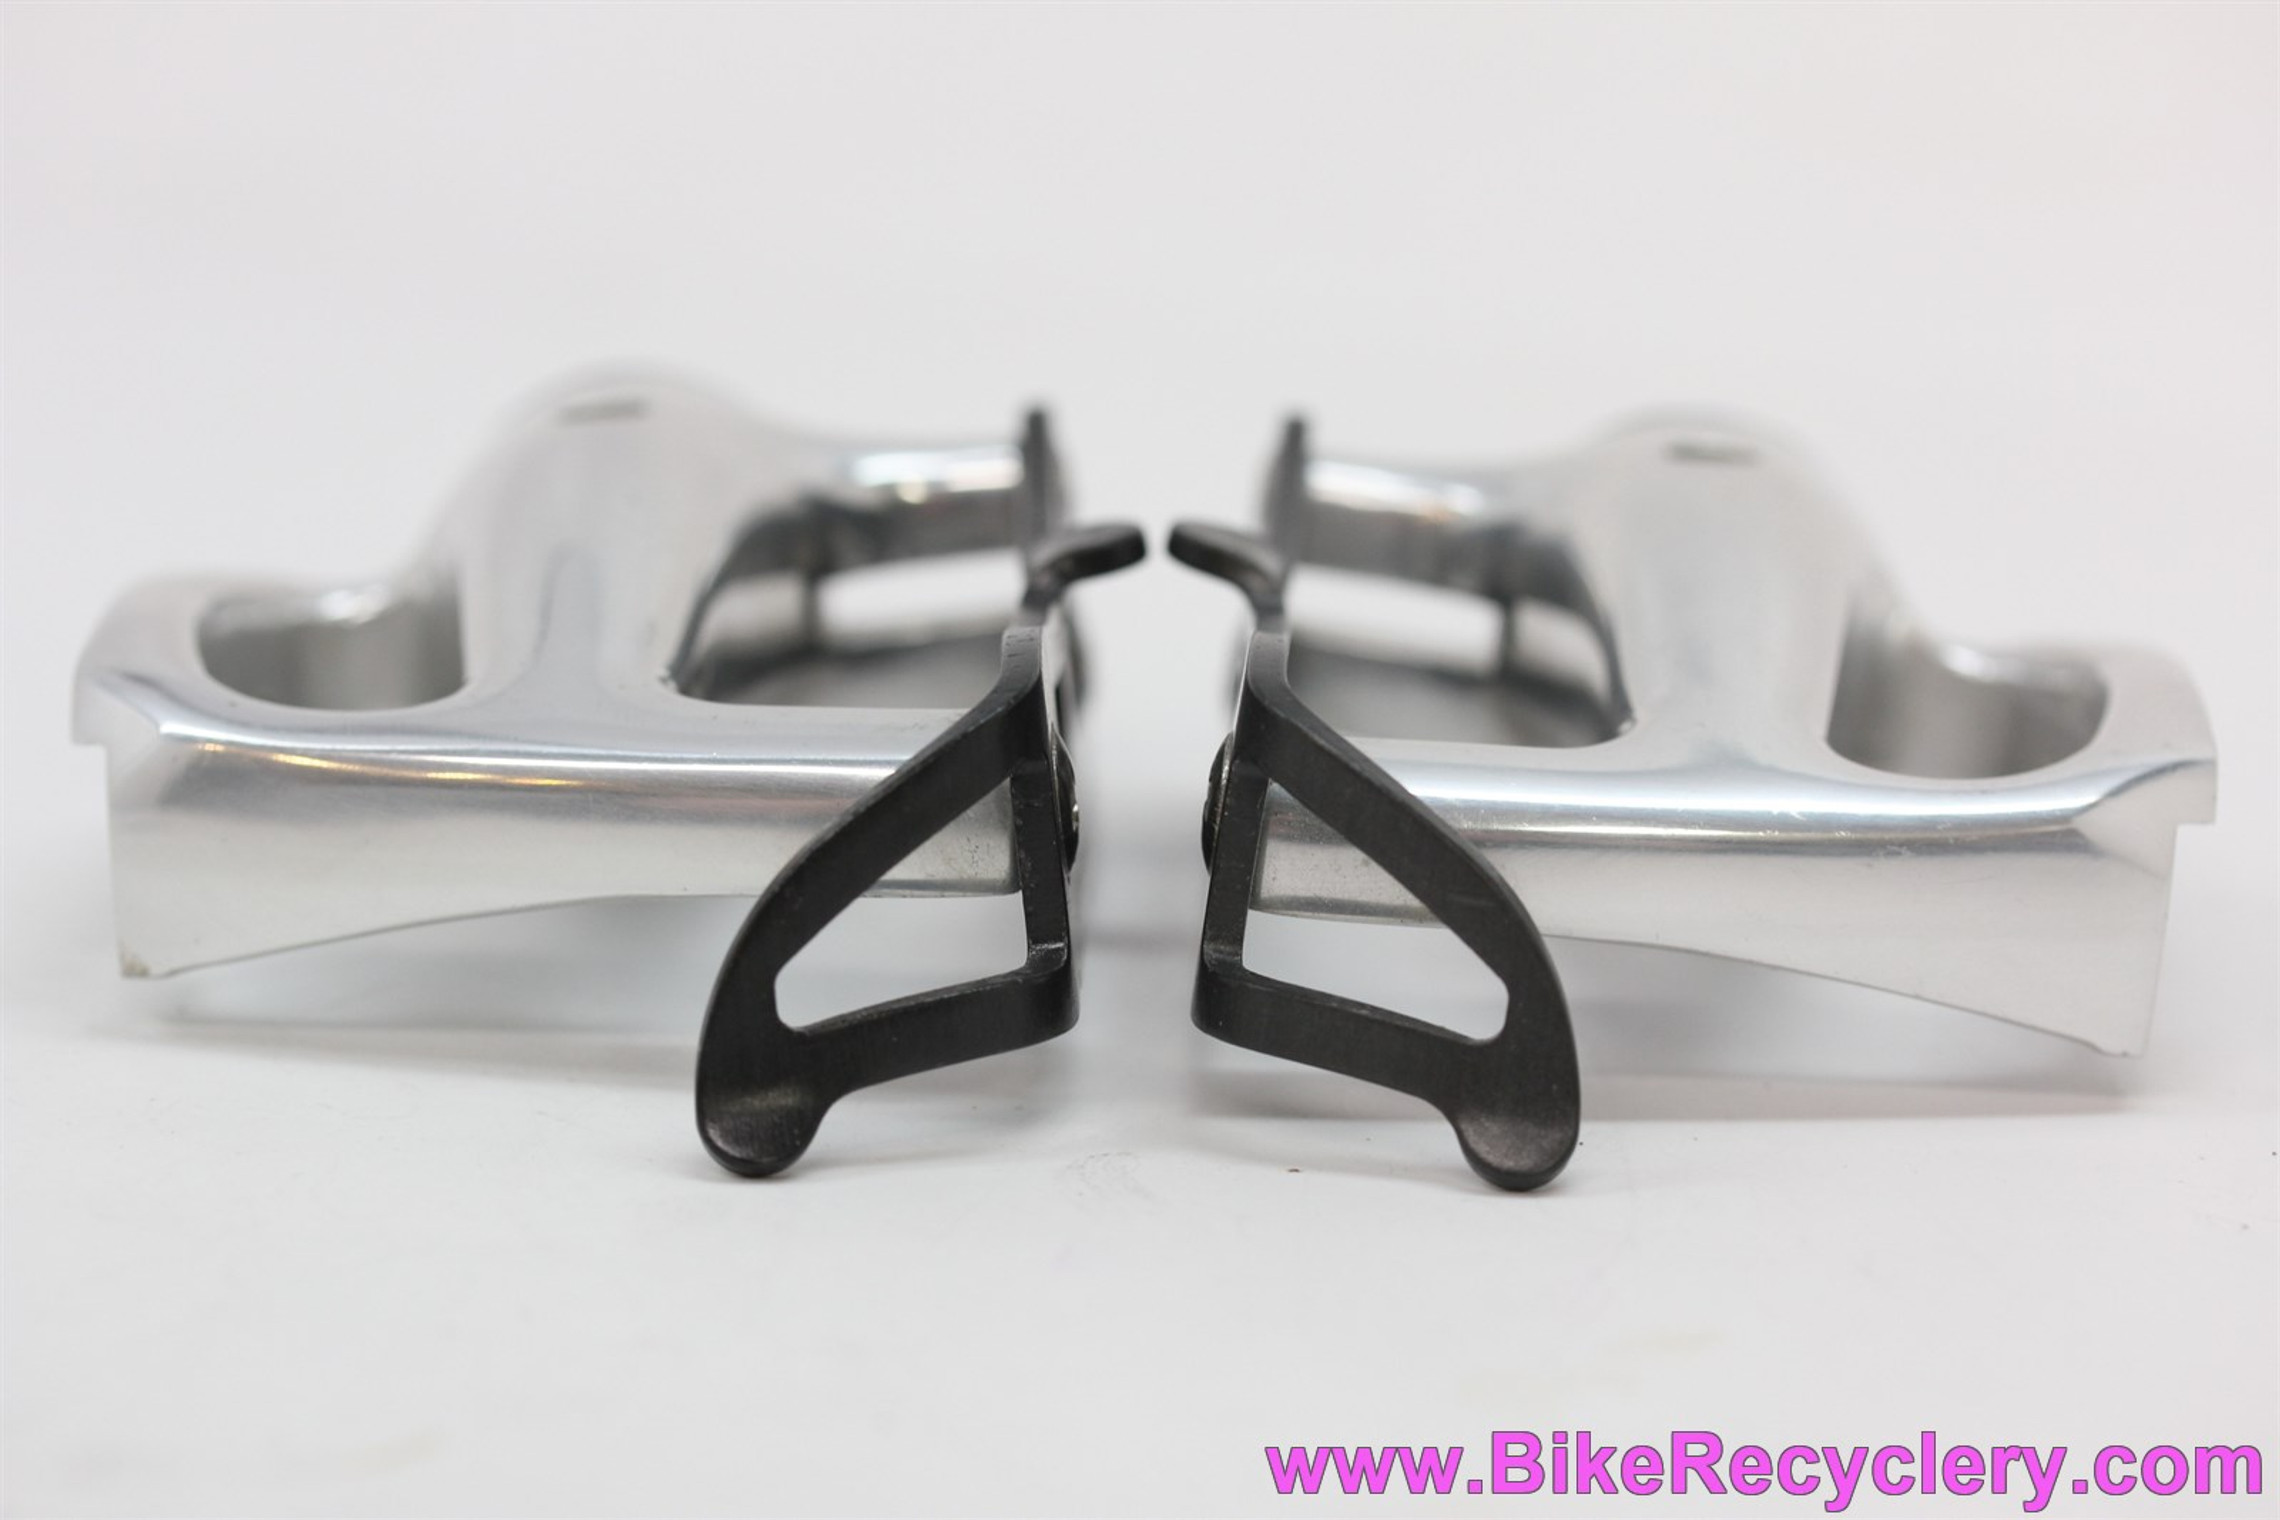 NOS Campagnolo C-Record PD-02RE Pista / Strada Pedals: Black Cages - No Front Cages